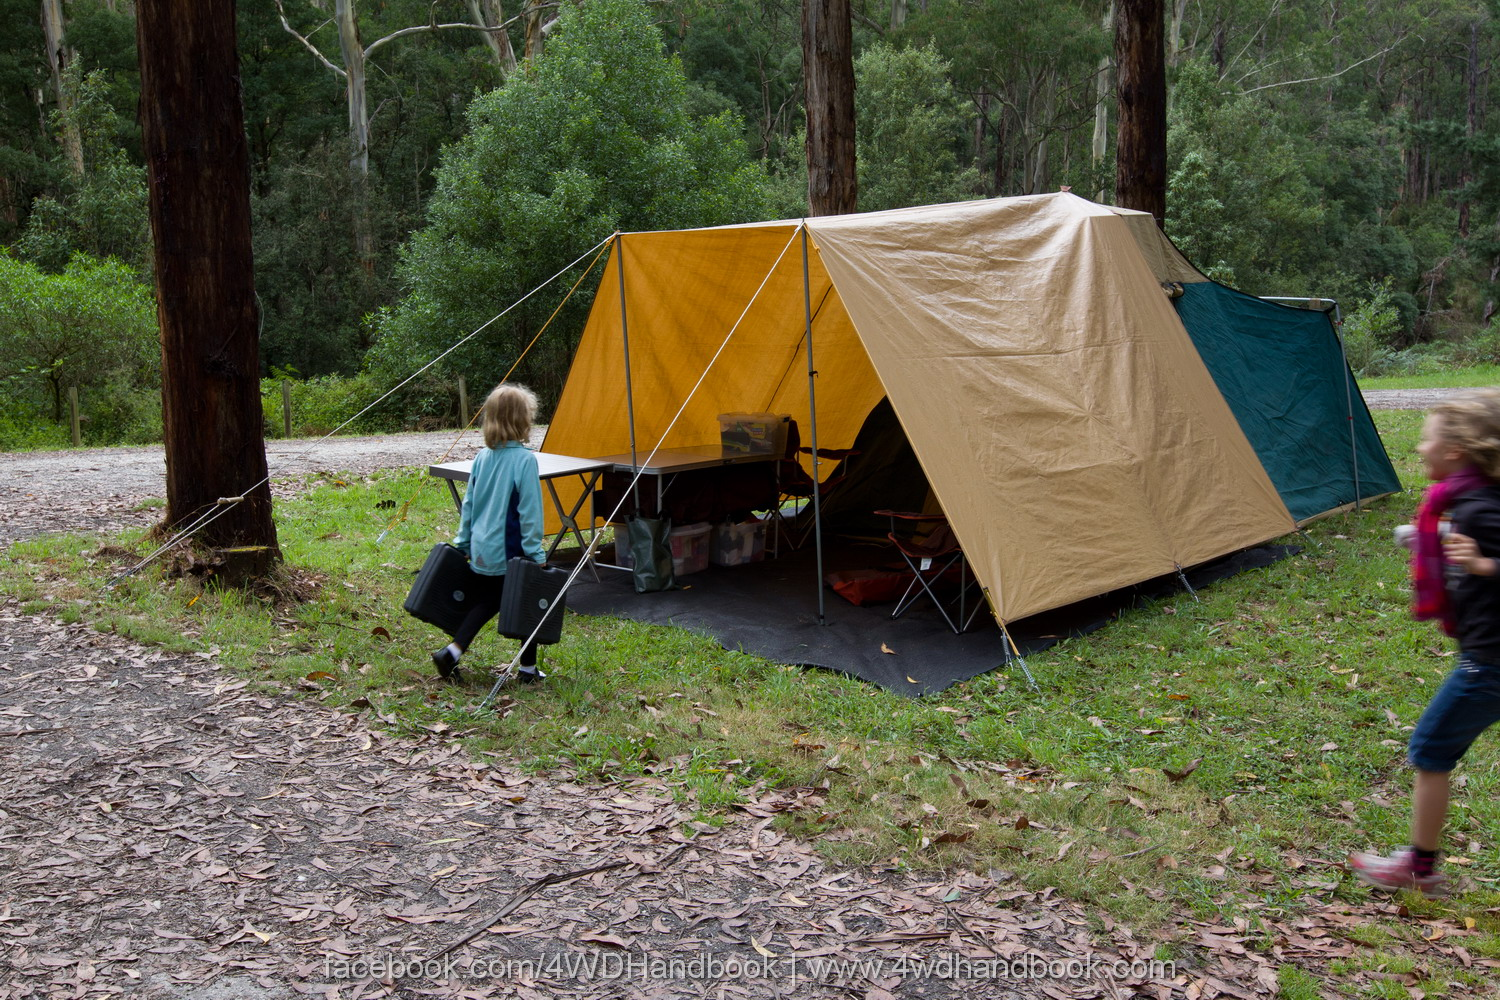 ... minutes from switching the caru0027s engine off to having the tent erect and the family inside setting up the bedding. Thatu0027s almost c&er-trailer quick. & QLD 4wd Tours | Top Tips for Vehicle Based Camping by Robert Pepper